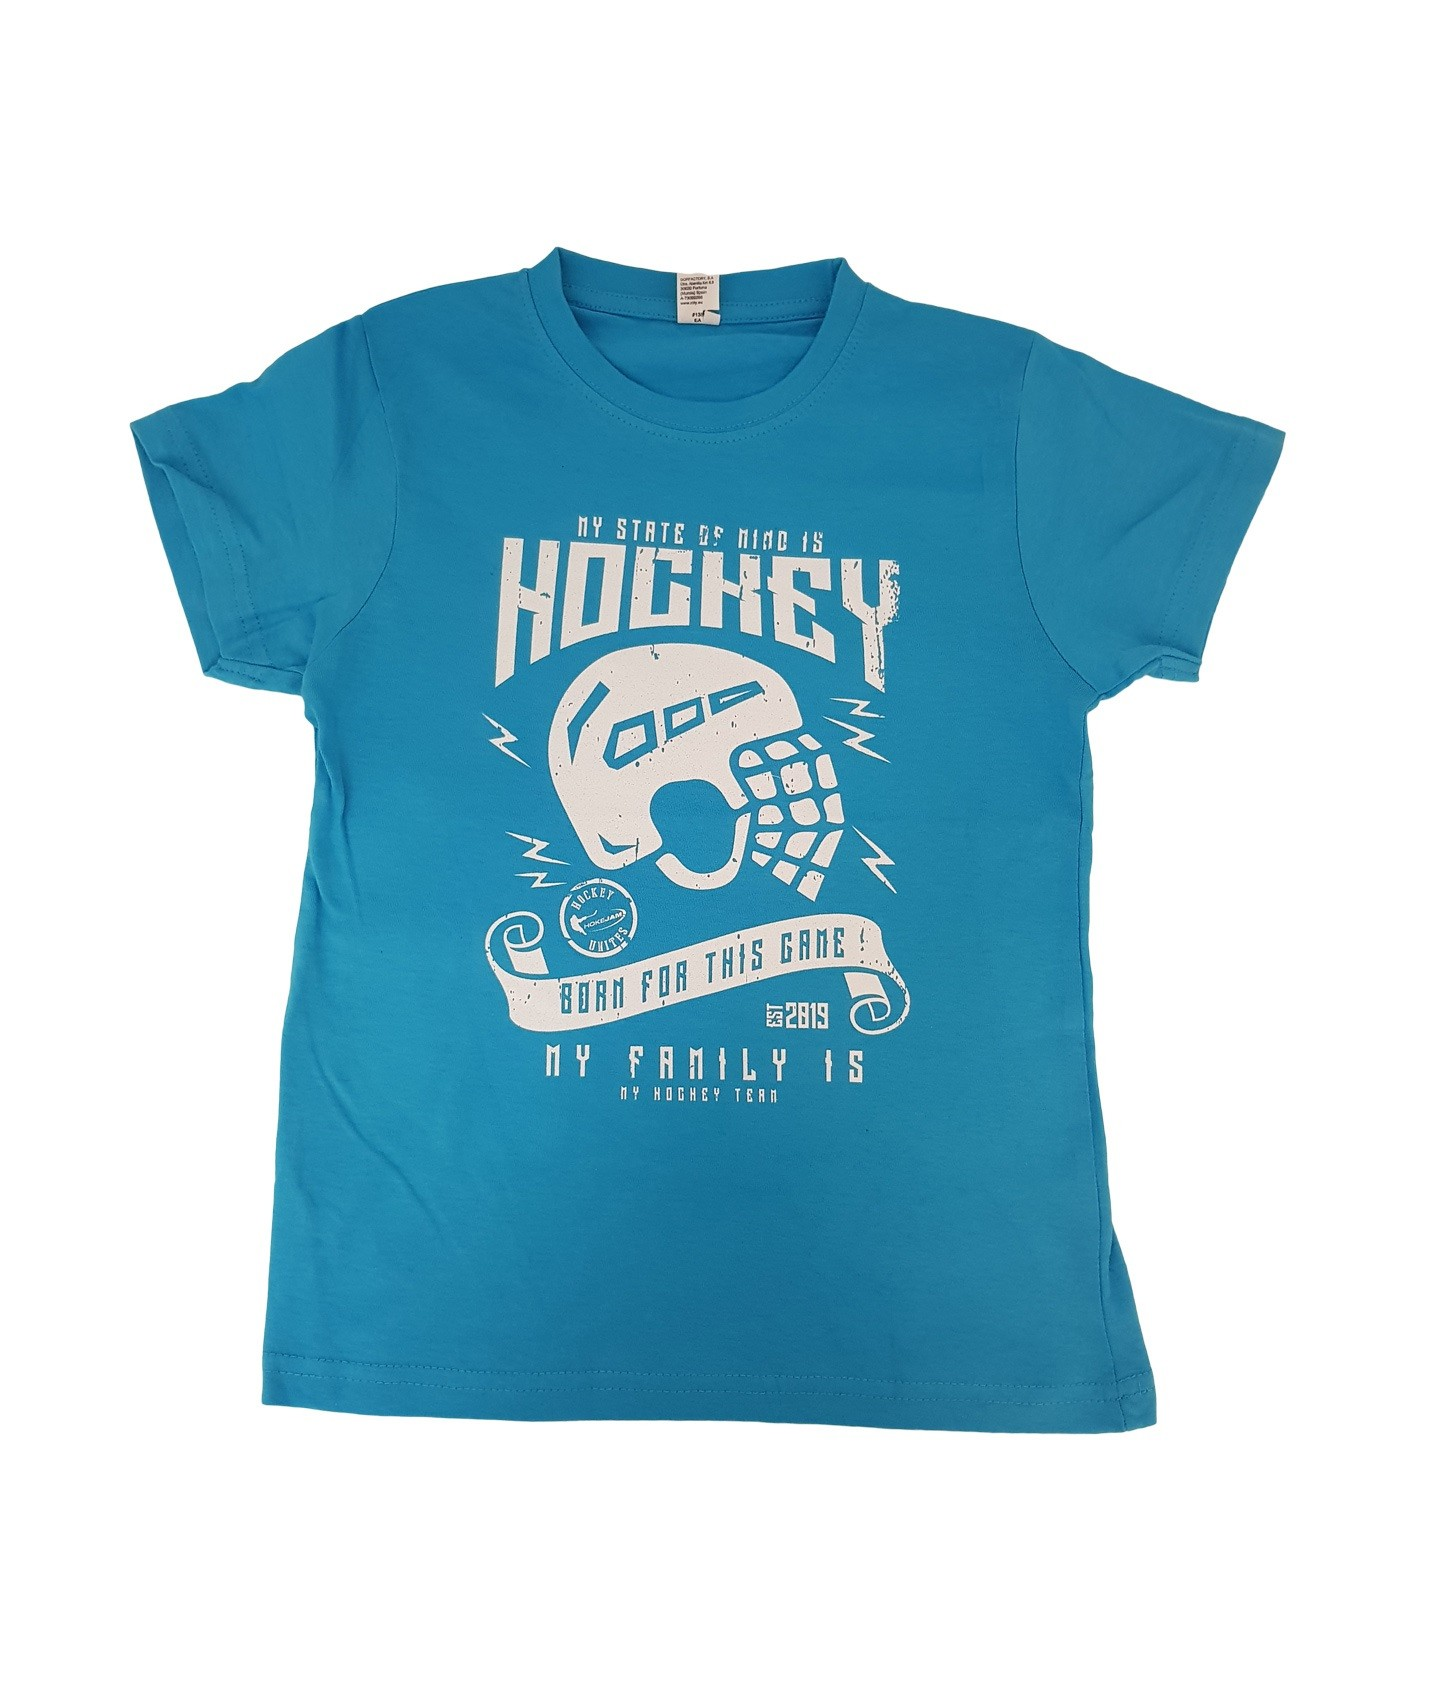 HOKEJAM.LV My State Of Mind Is Hockey Youth T-Shirt